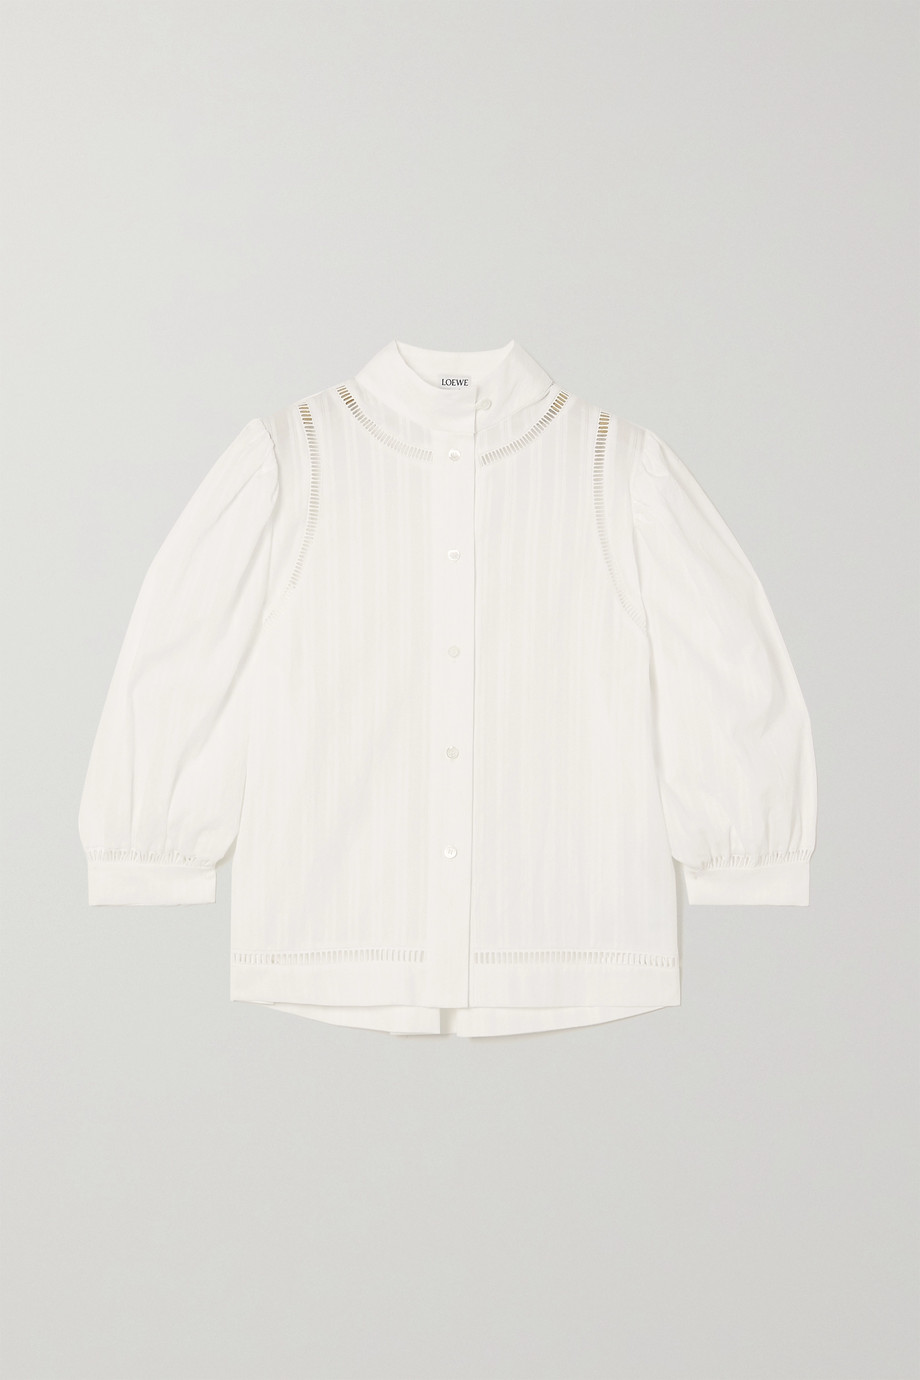 Loewe Embroidered striped cotton-voile blouse